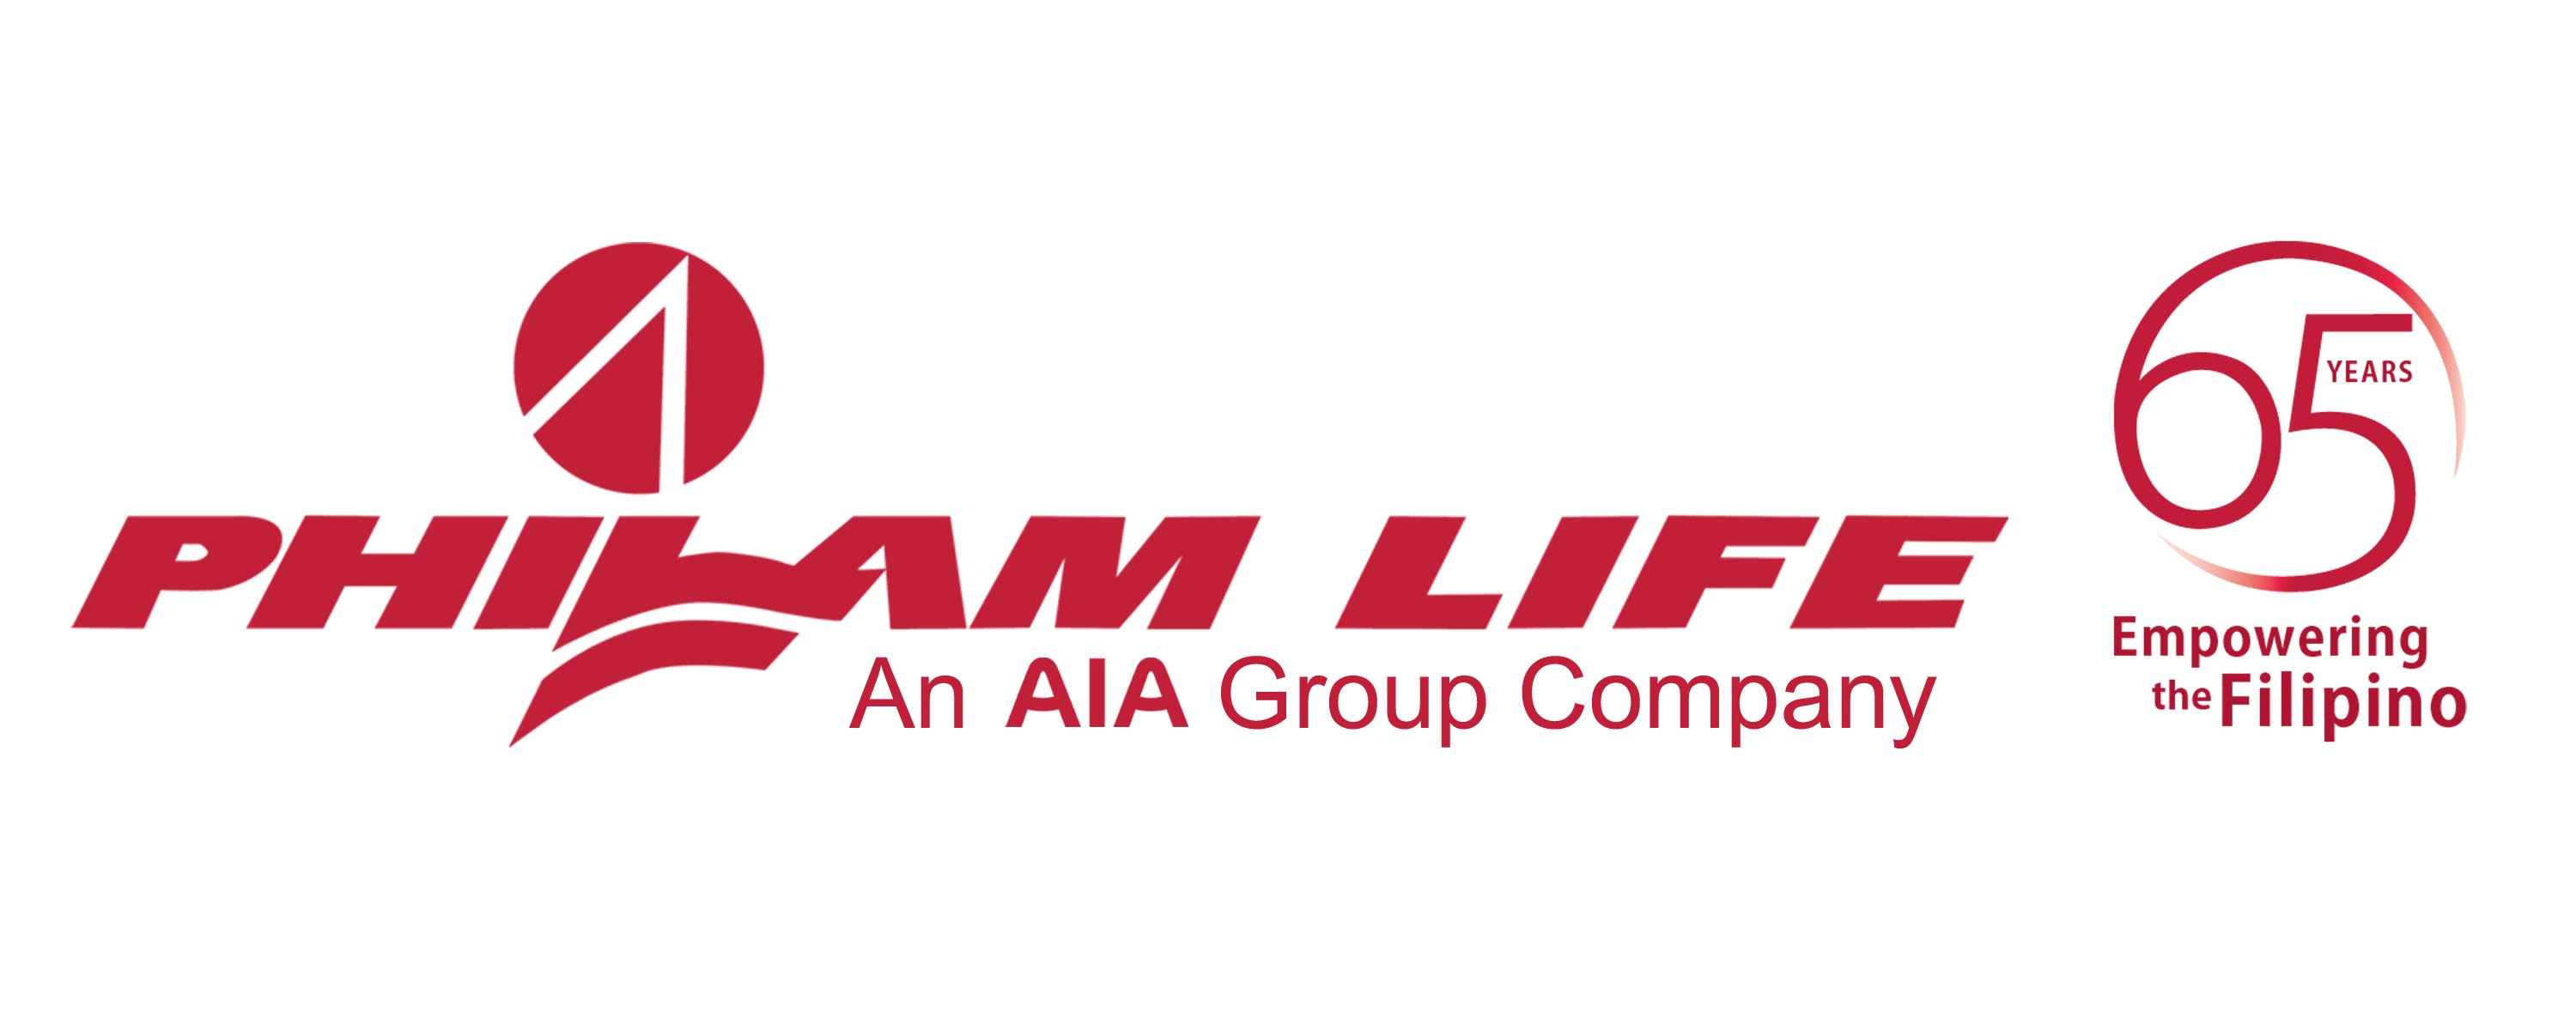 Philam Life Logo with 65 years copy